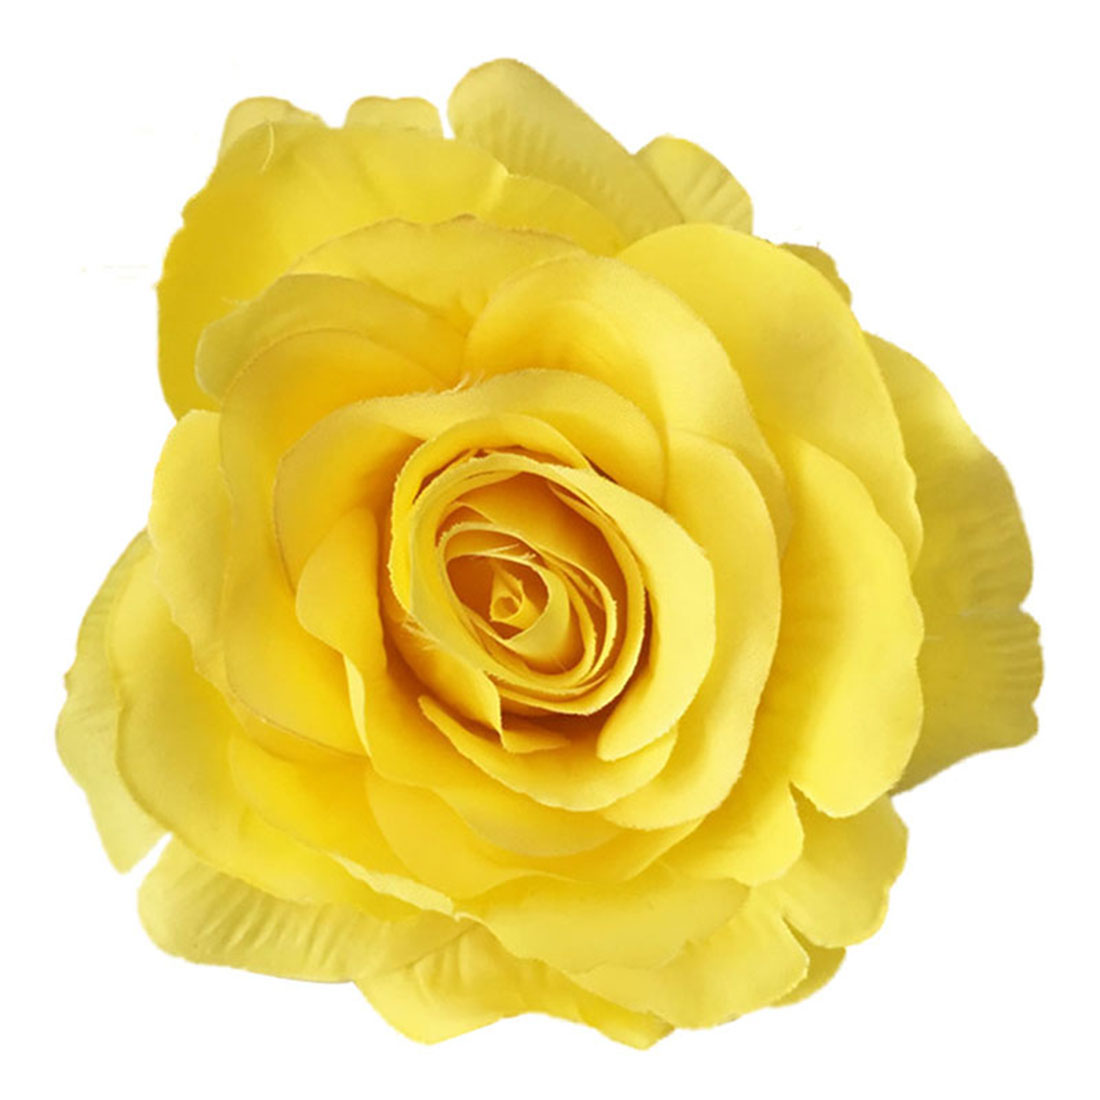 Buy yellow flower wall decor and get free shipping on AliExpress.com